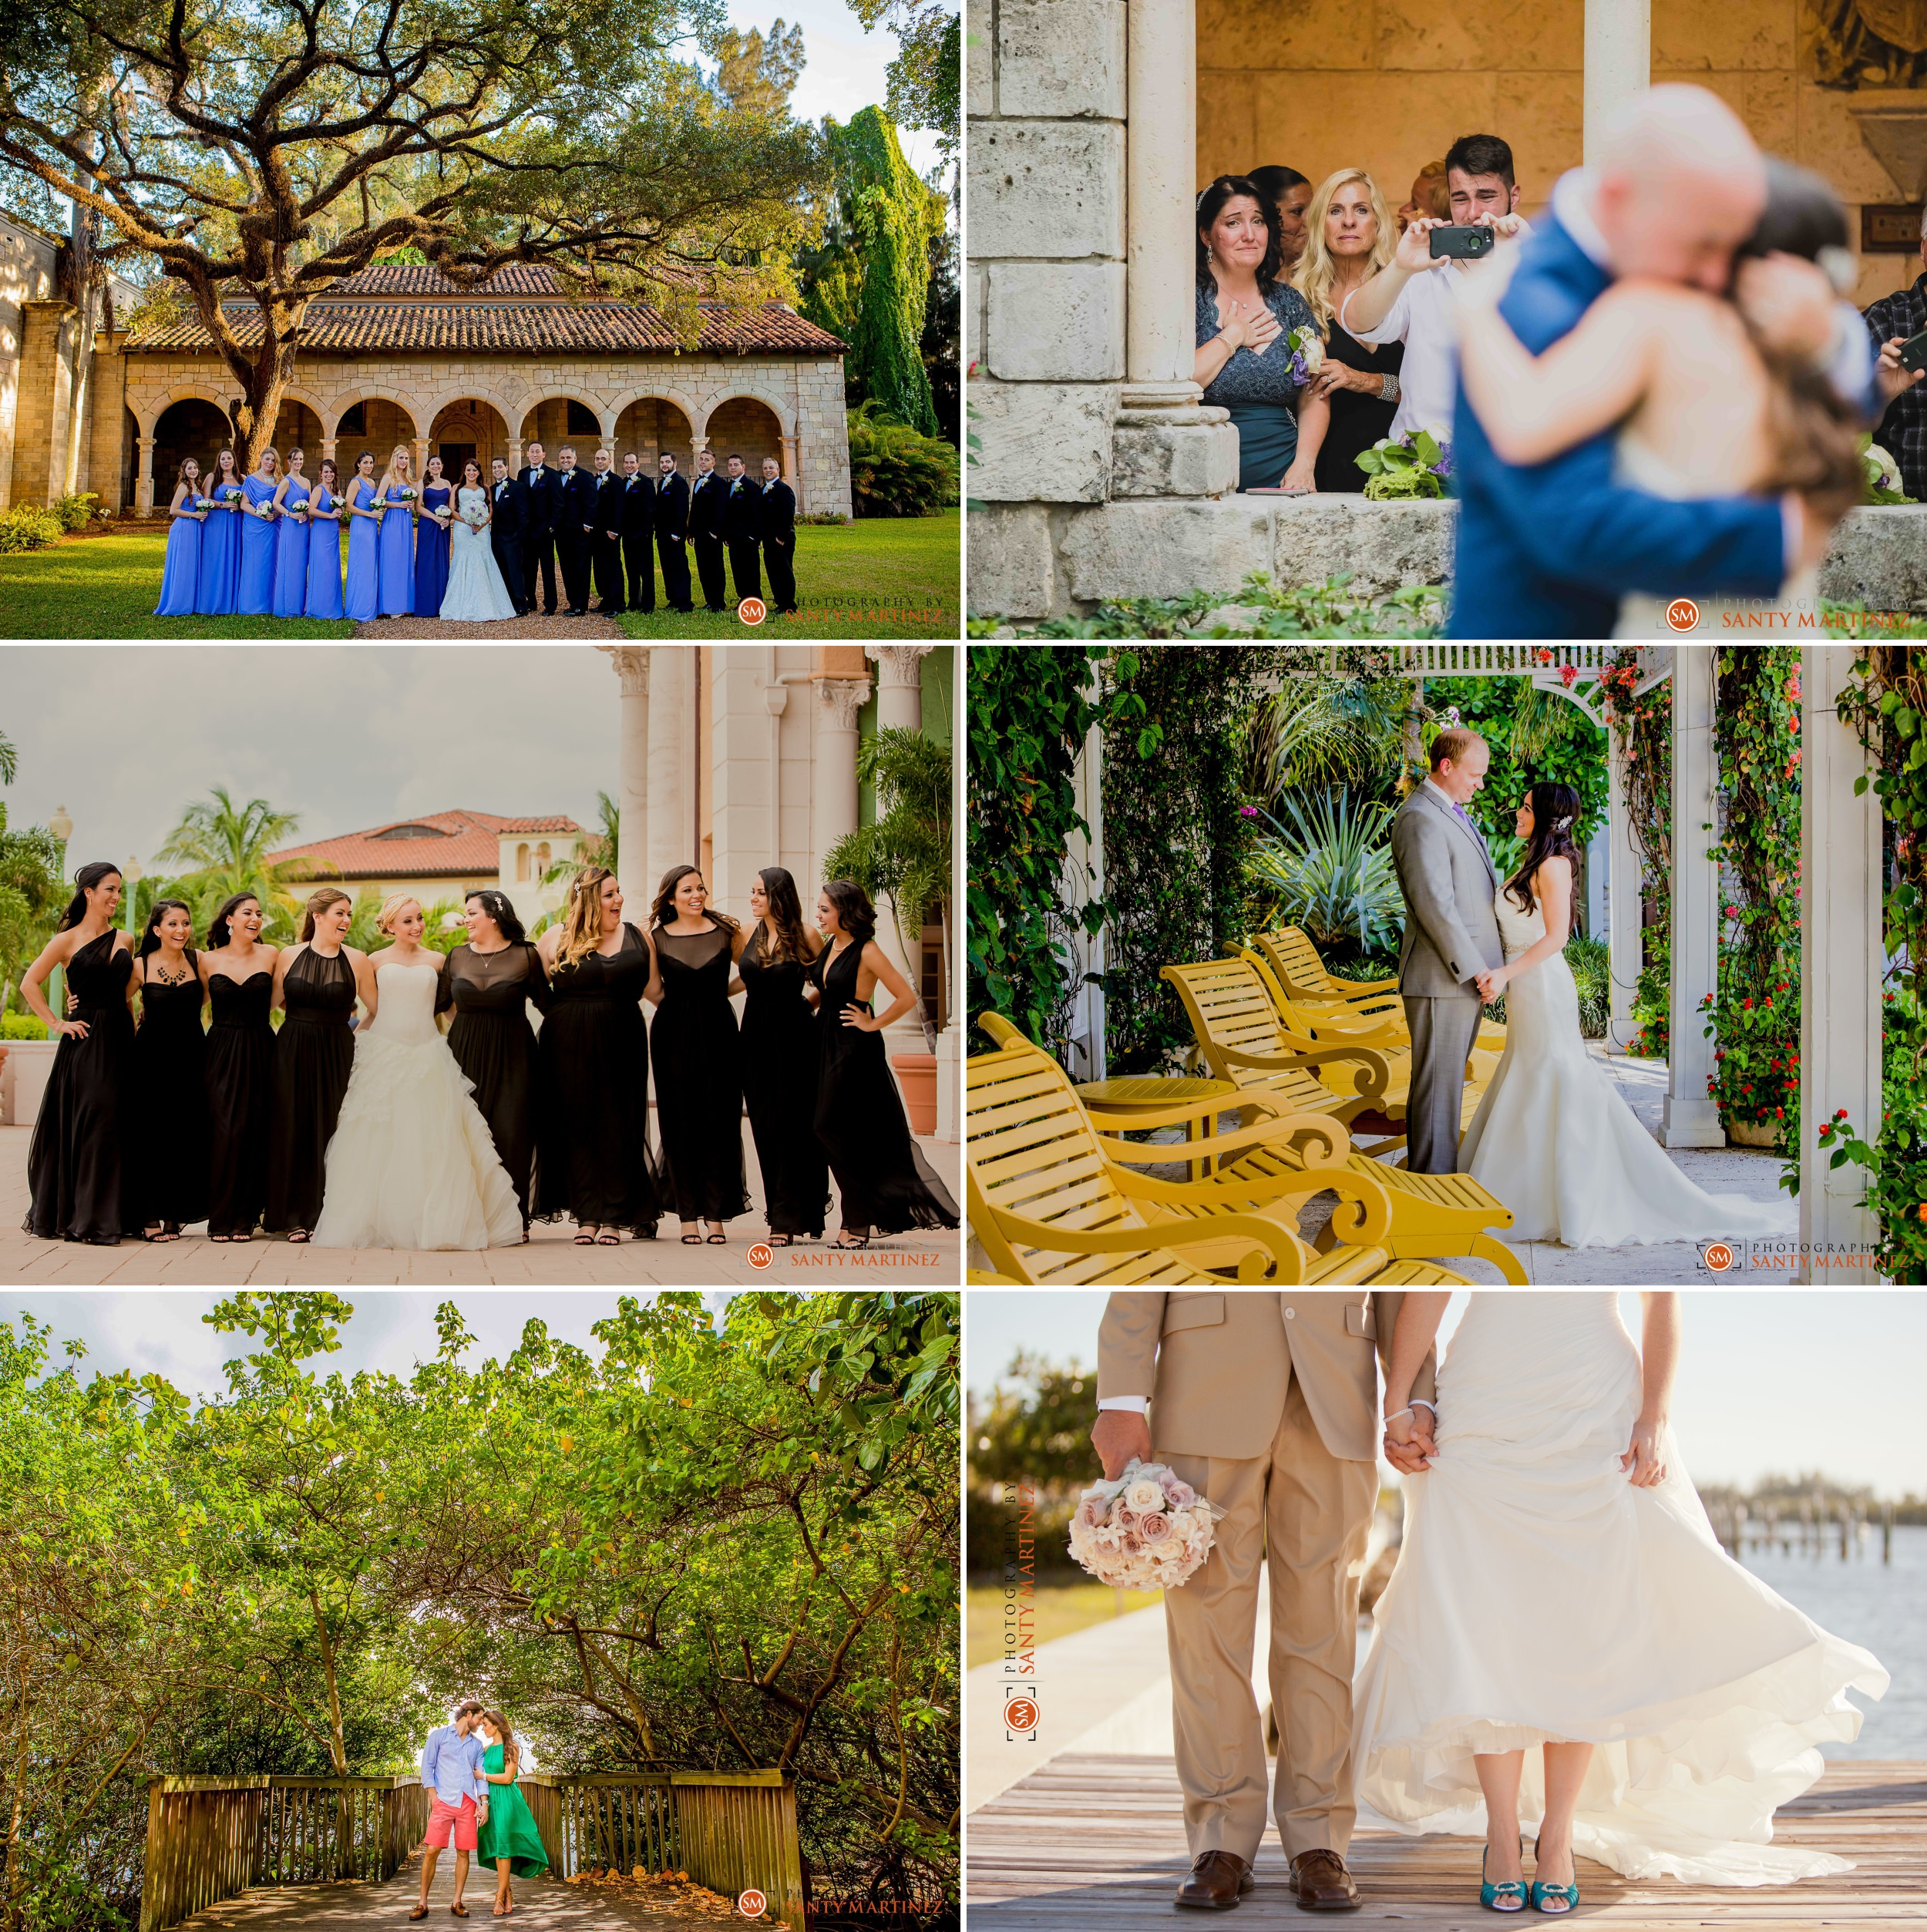 Santy Martinez - Photography - Miami Wedding Photographers 5.jpg